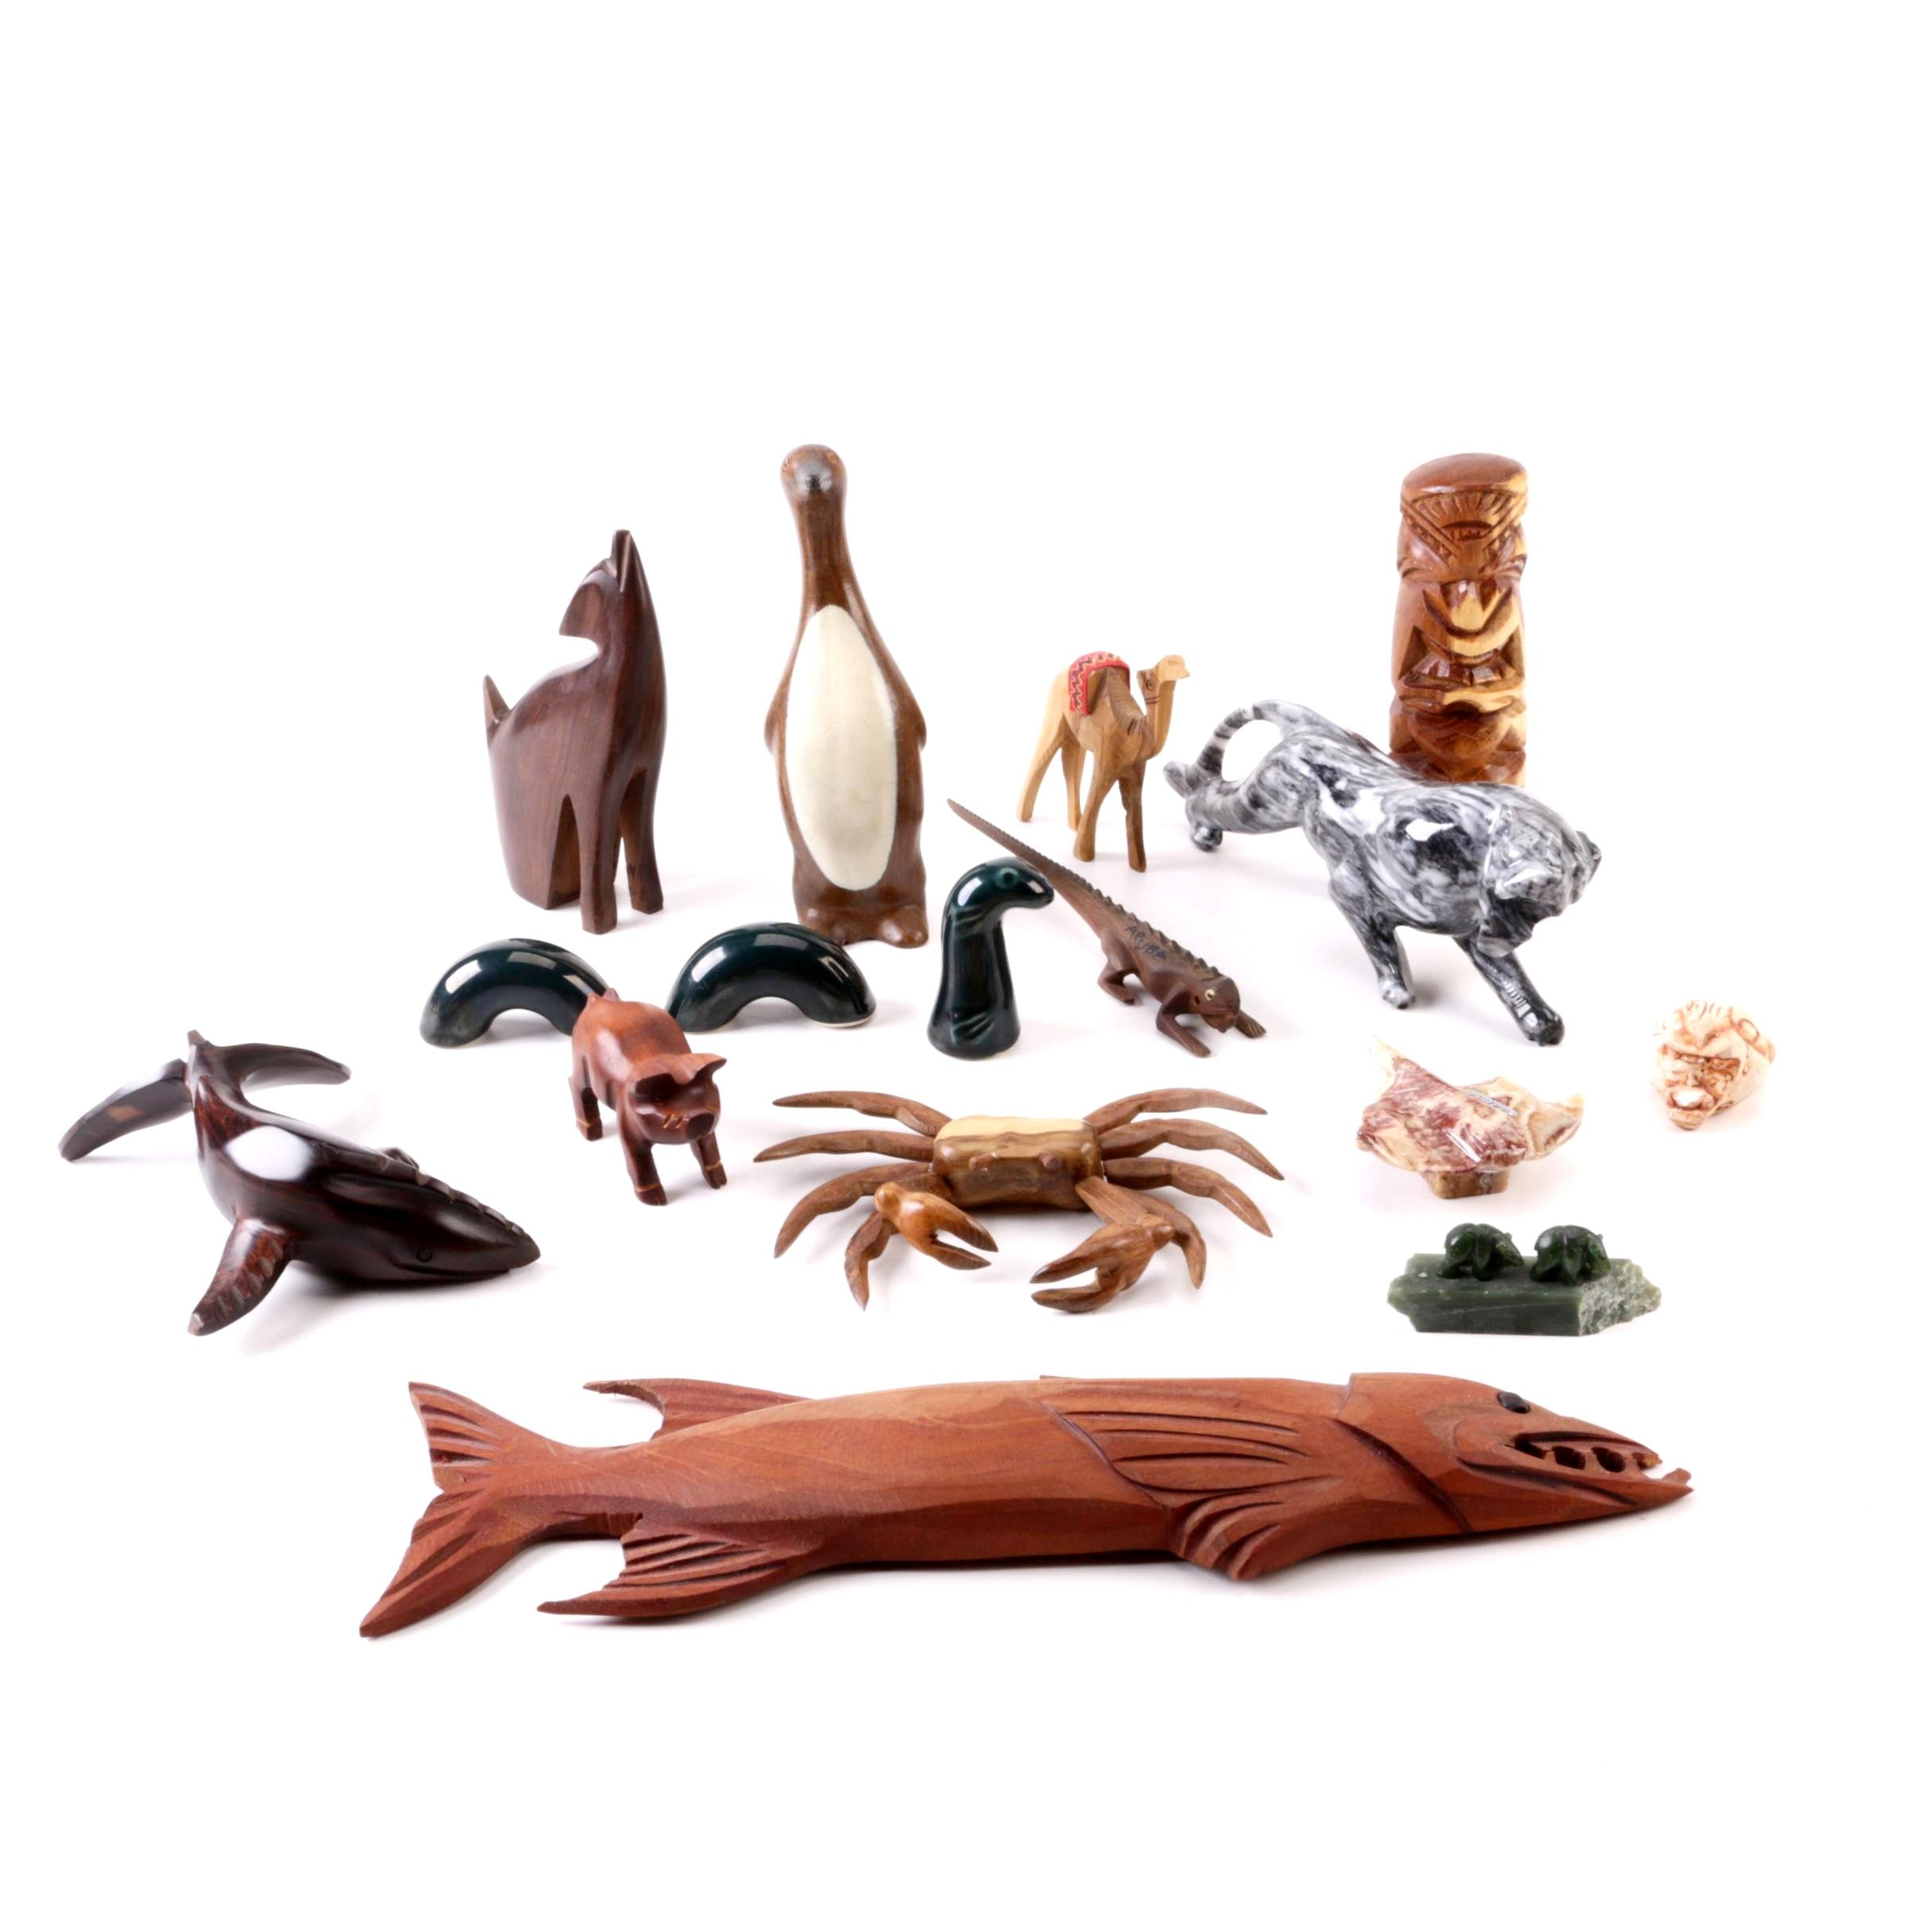 Stone, Wood and Ceramic Animal Figurines